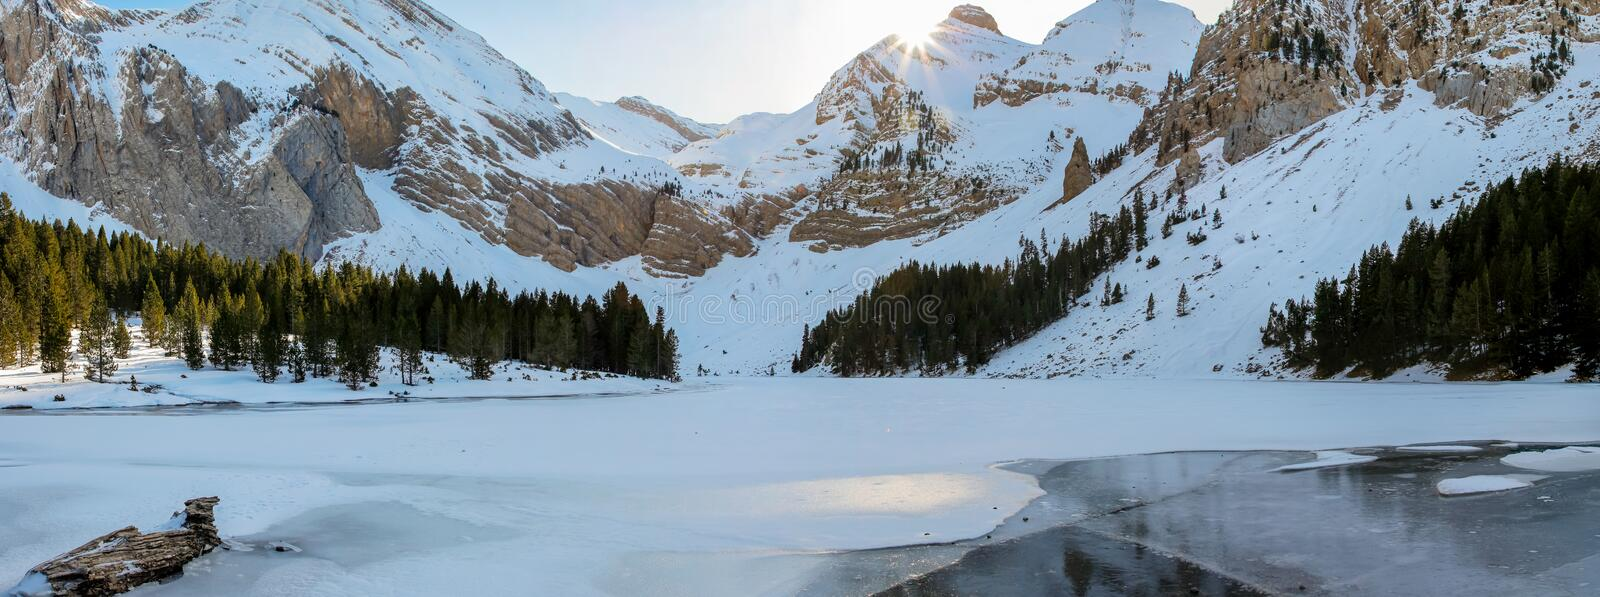 Panoramic view of the Ibon de Plan Huesca. Nature winter concept royalty free stock image